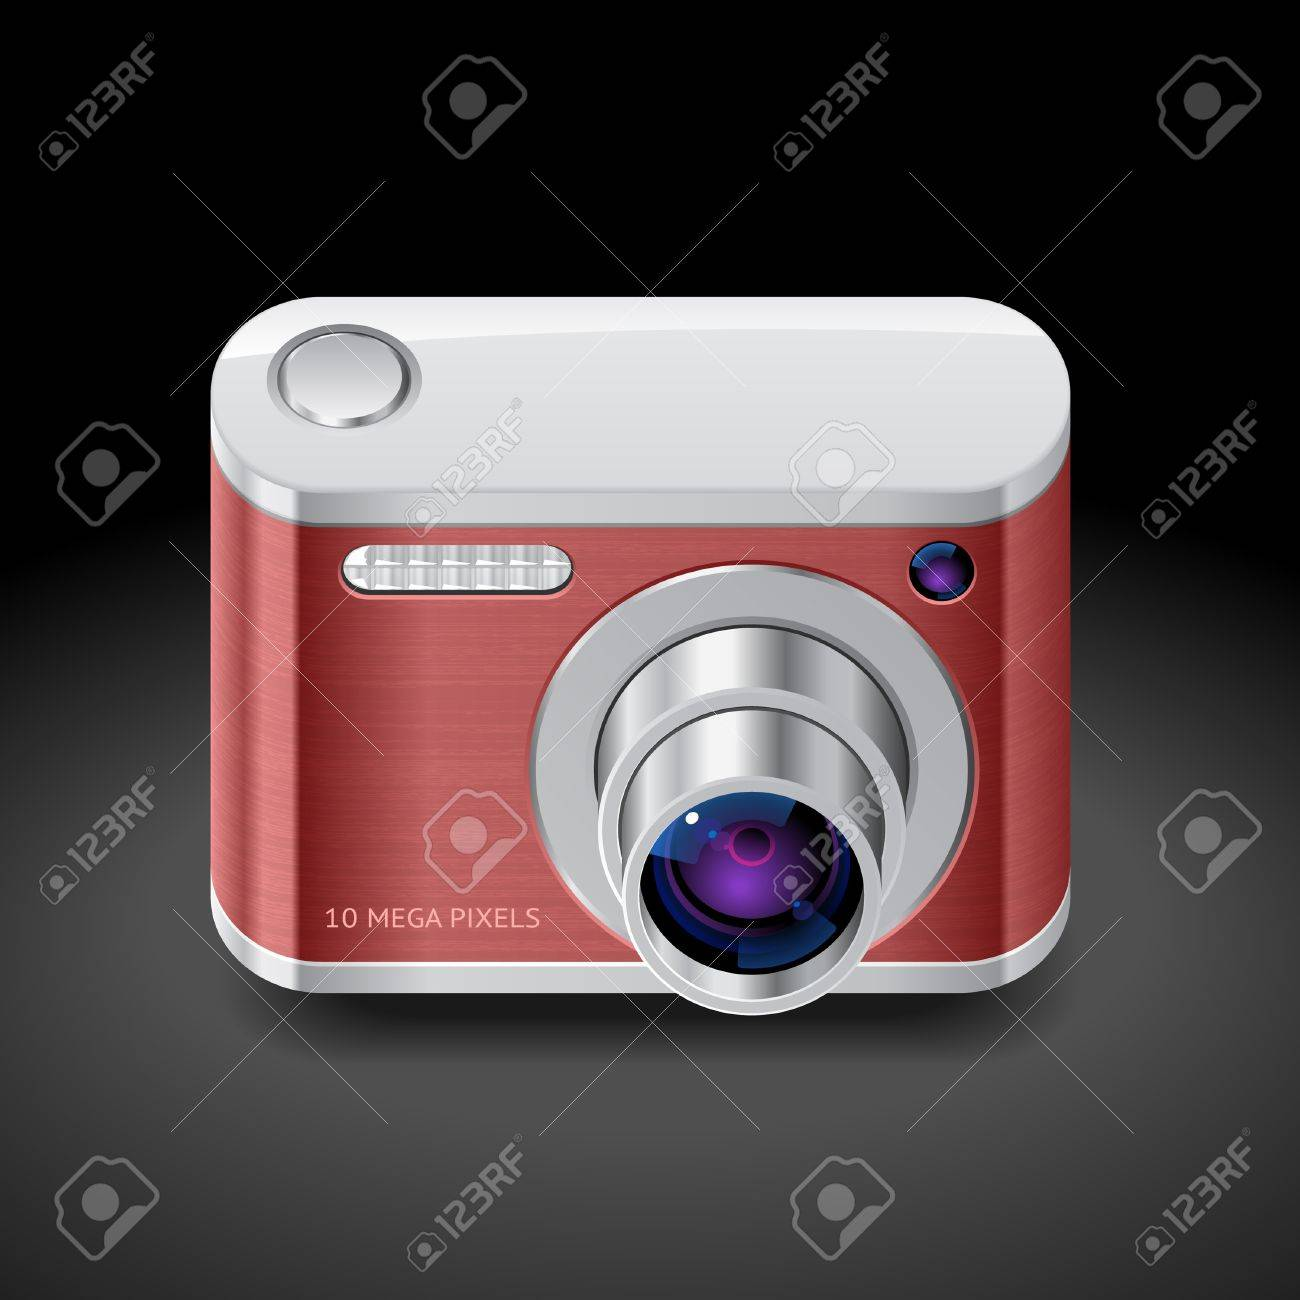 Icon for red compact camera. Dark background. Stock Vector - 18421467